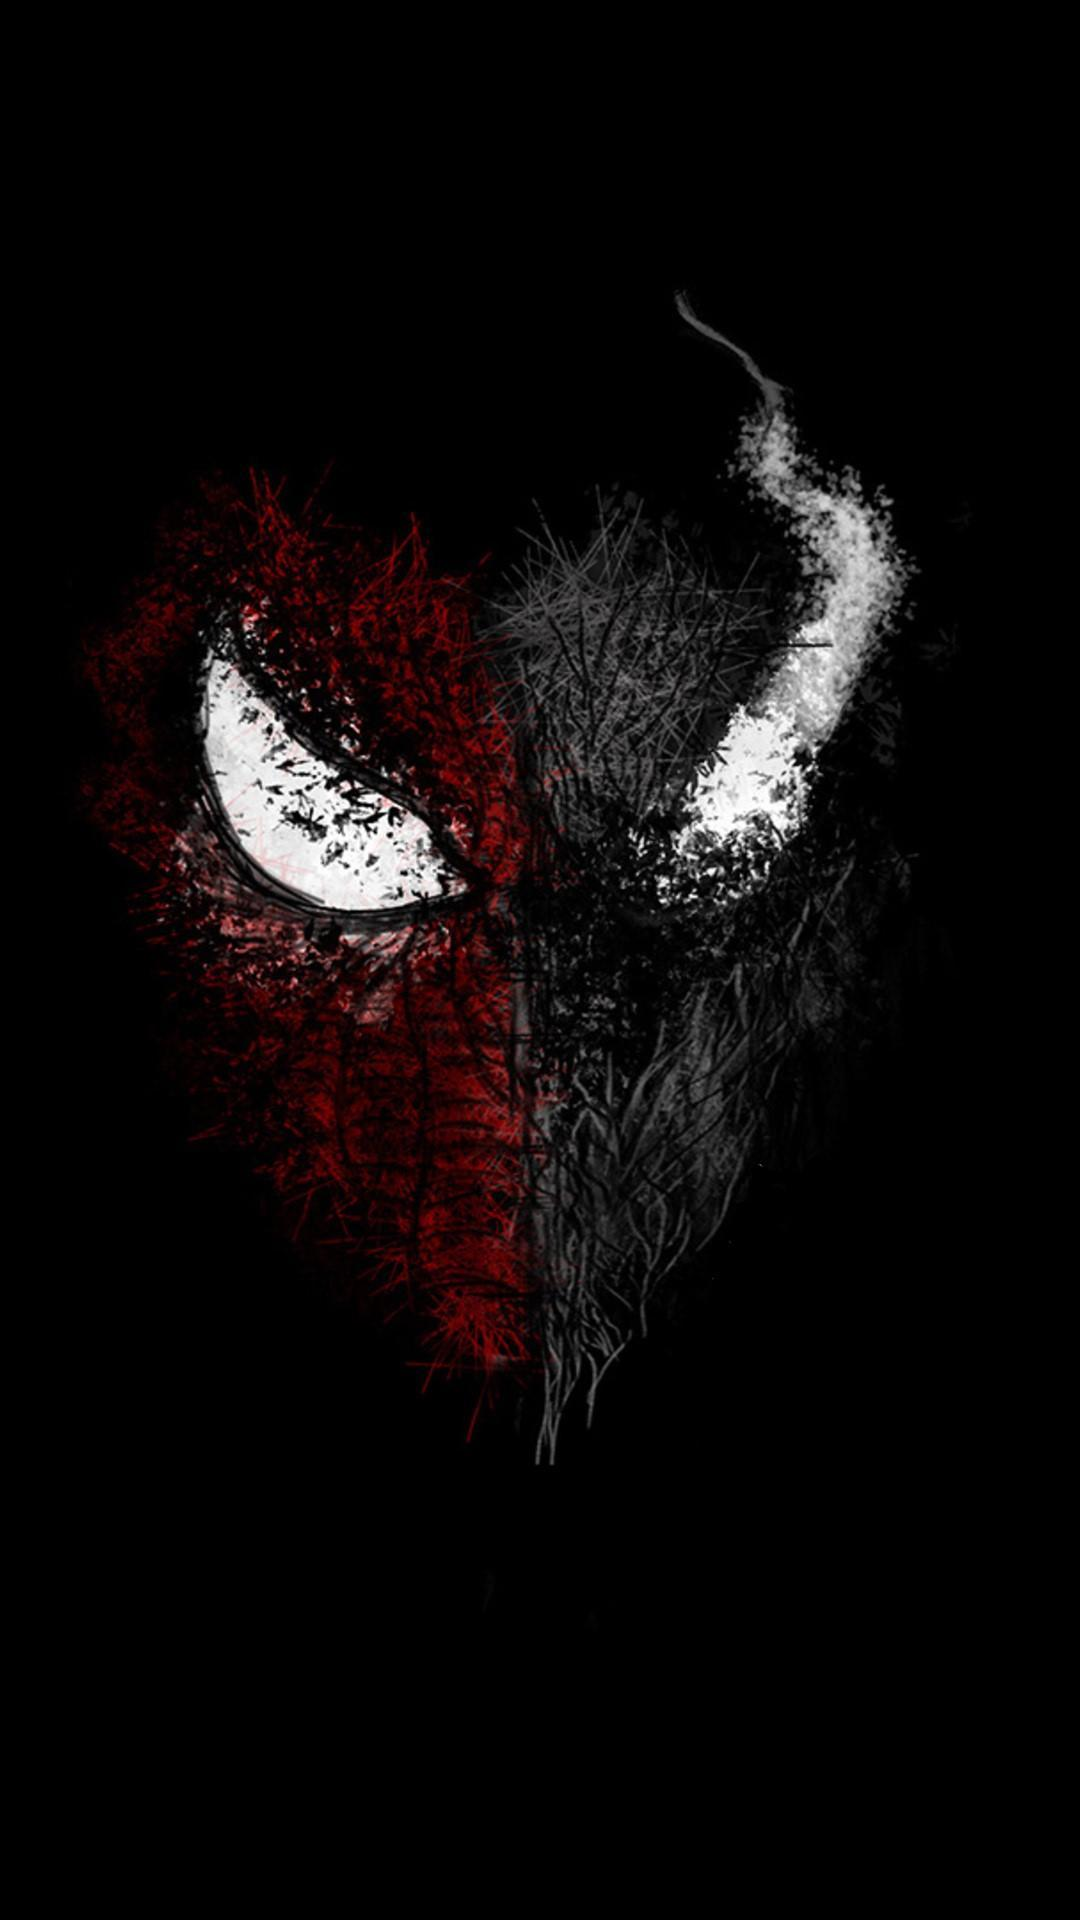 Spider Man Hd Wallpapers For Android Apk Download